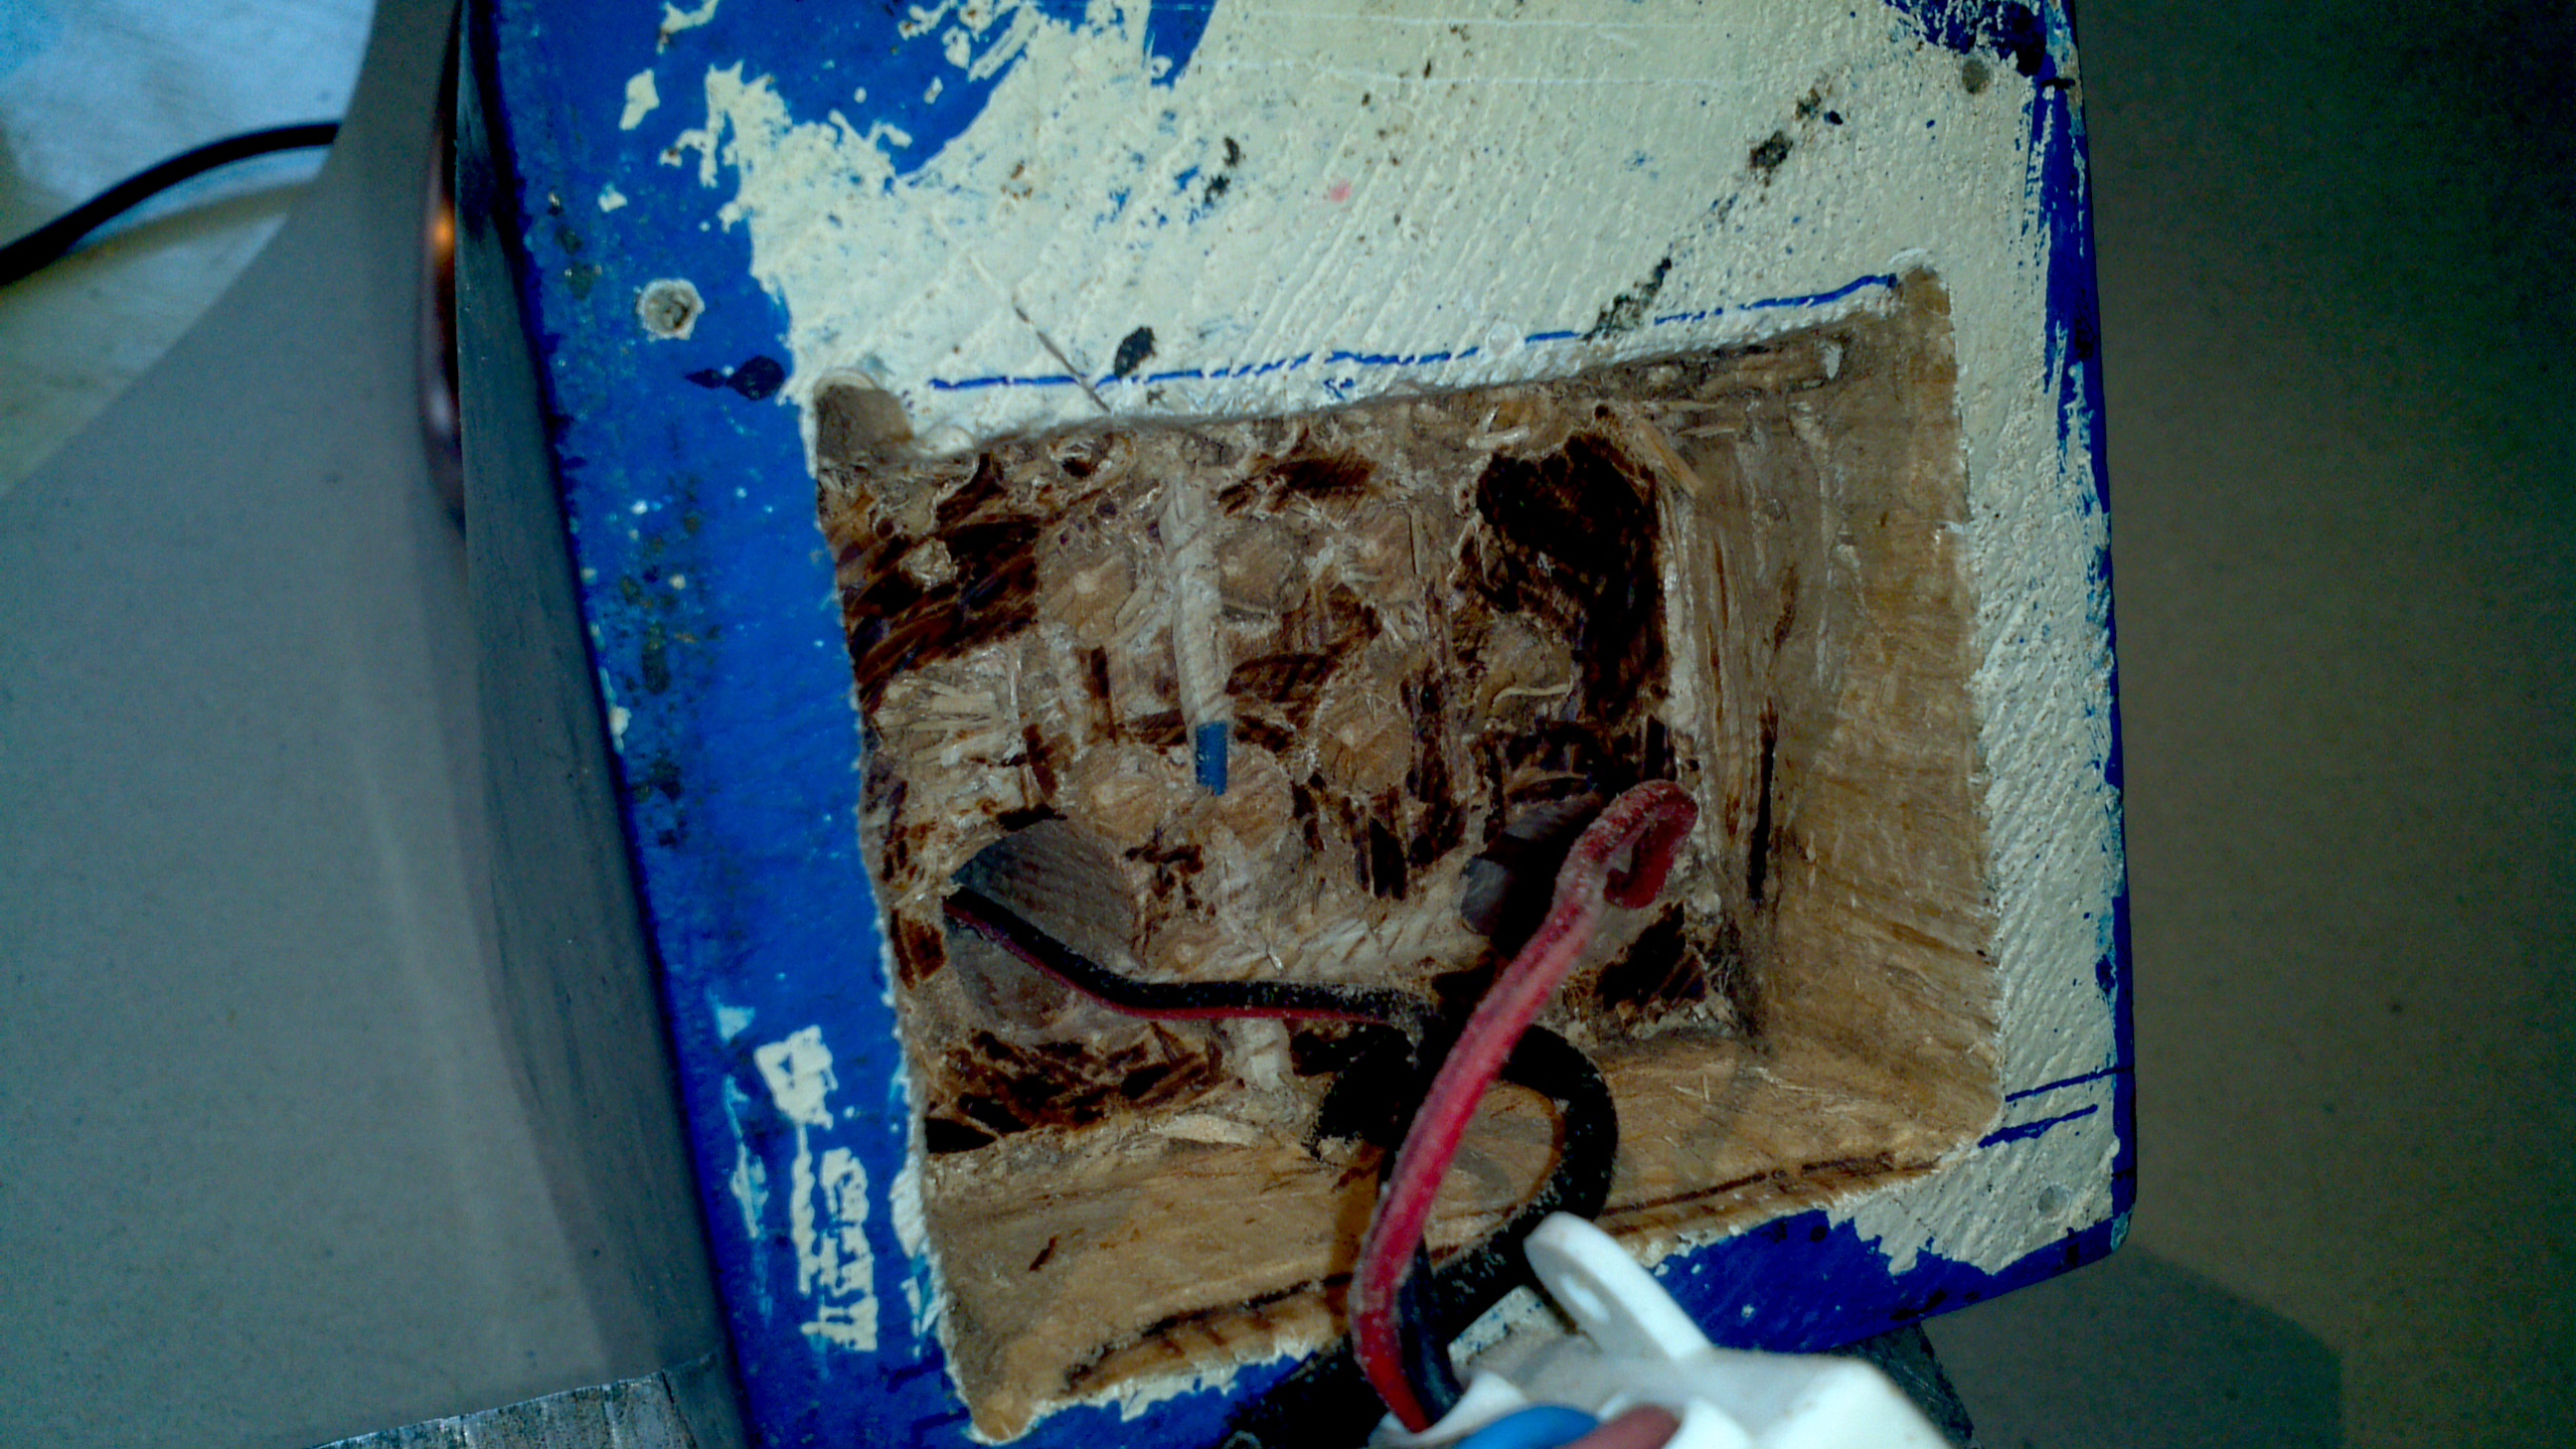 Picture of Holes for Copper Tube, Recess for Power Supply and Holes for Wires